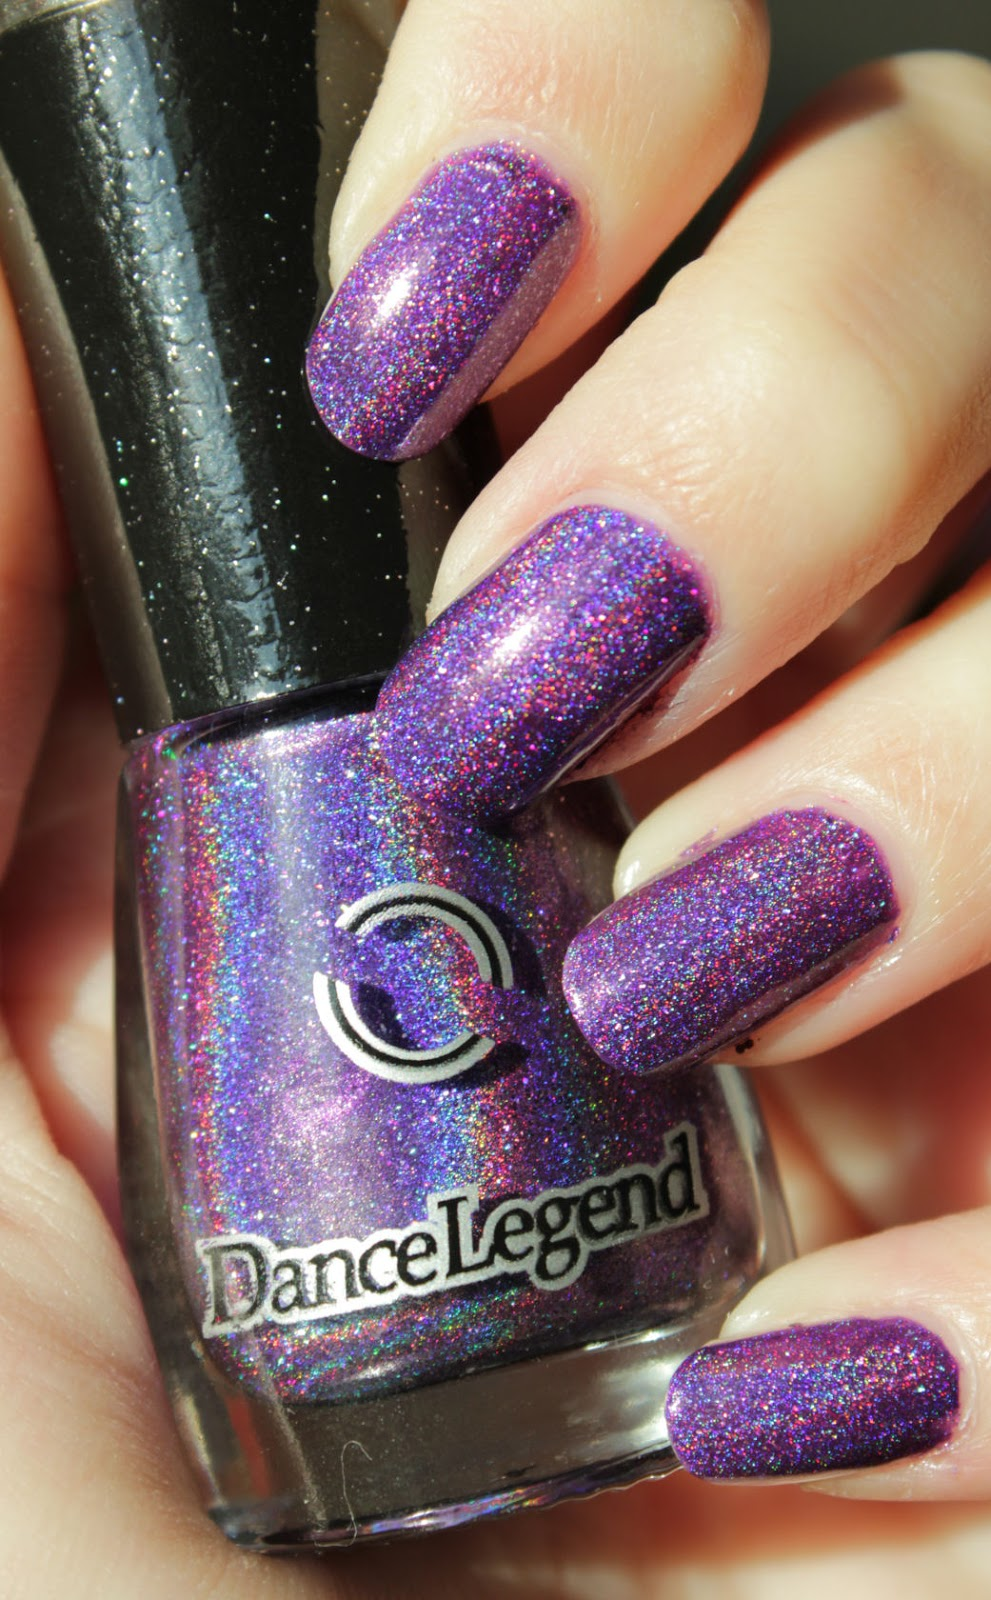 http://lacquediction.blogspot.de/2015/01/dance-legend-holodays-collection-851.html